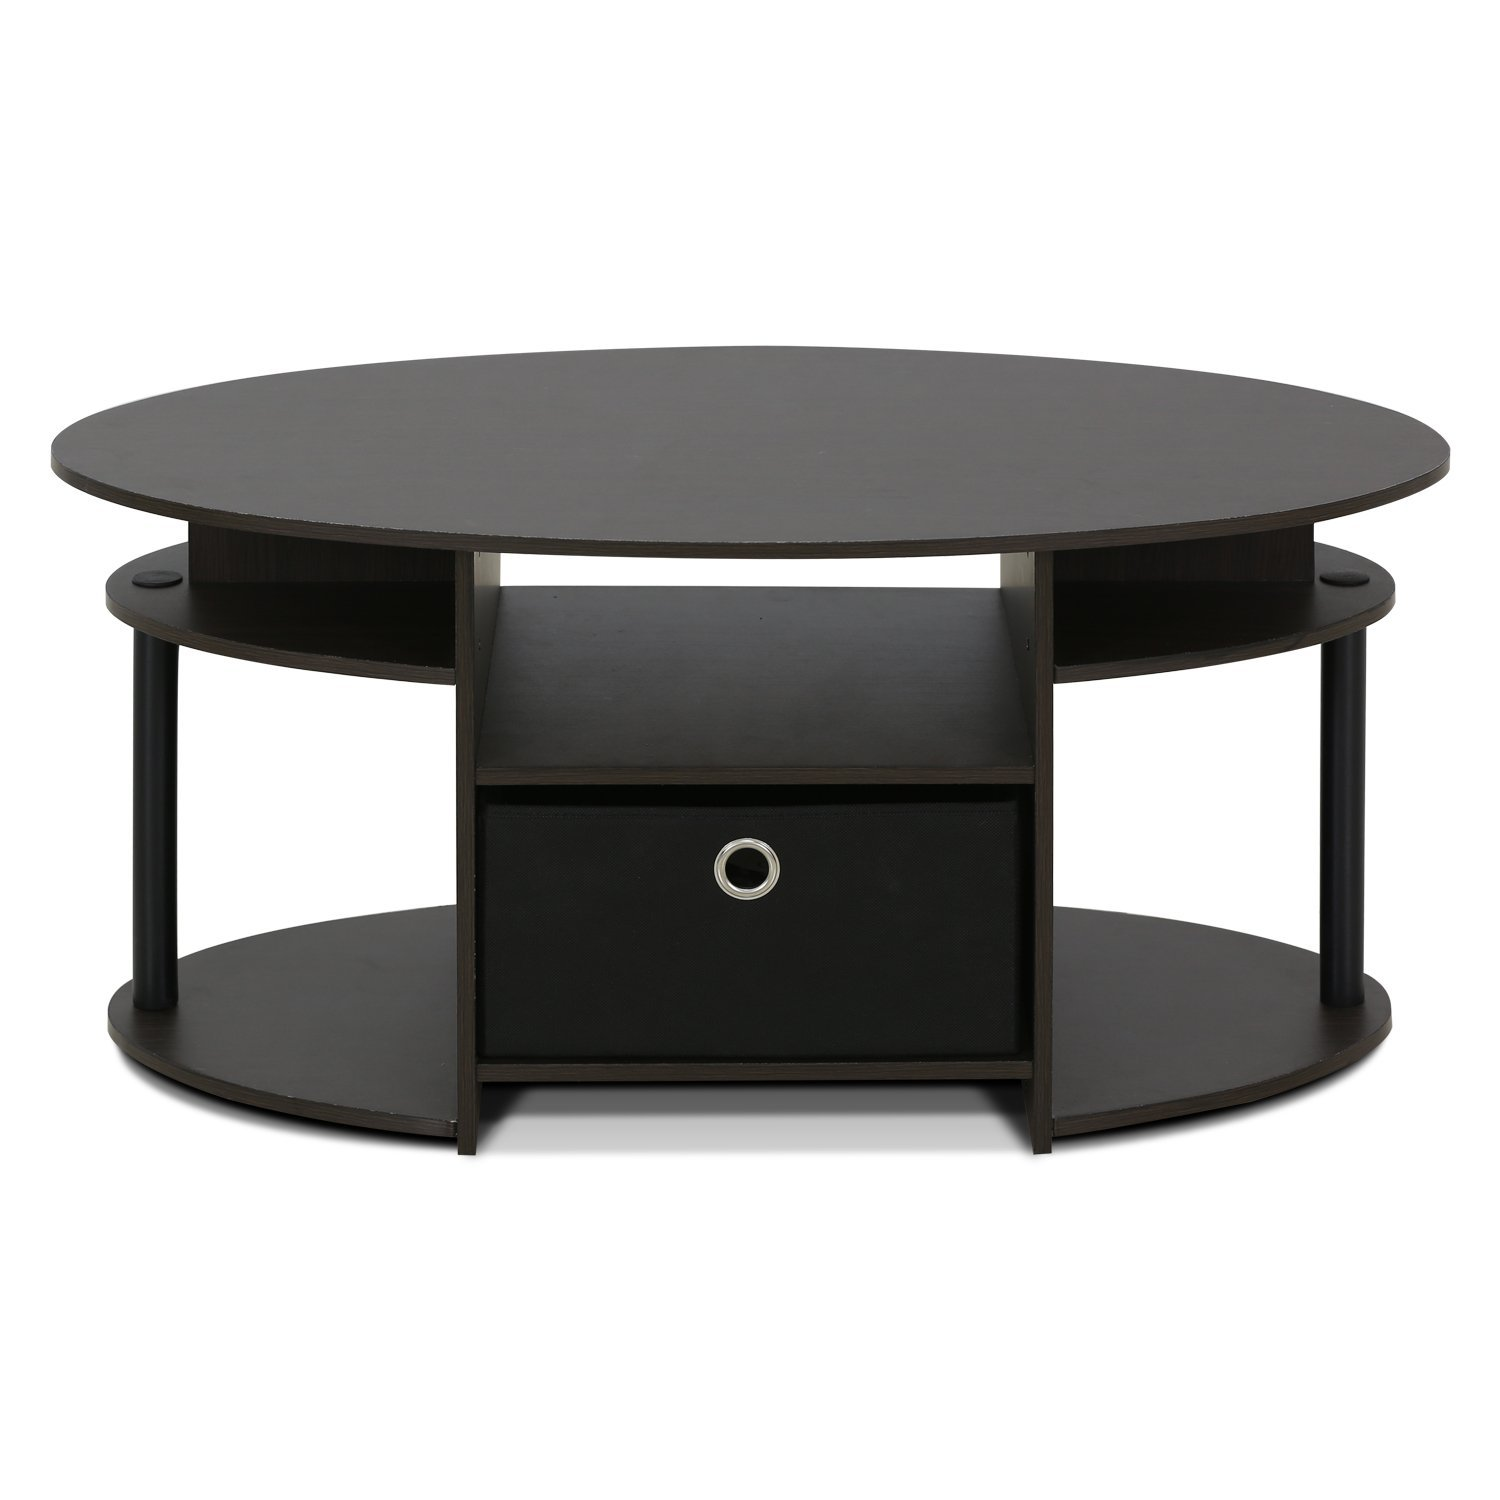 Amazon FURINNO WNBK Jaya Simple Design Oval Coffee Table